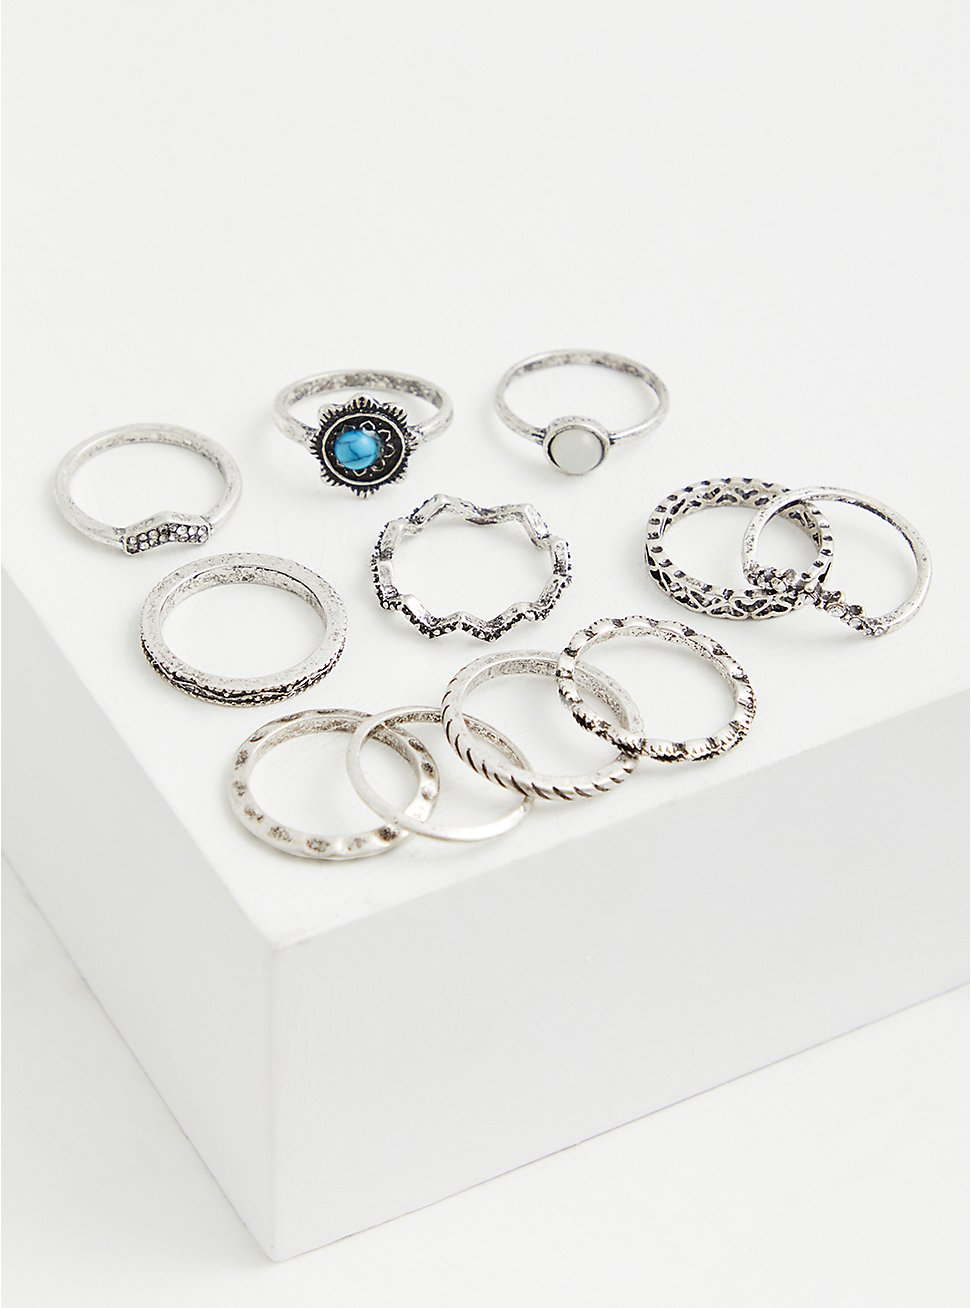 Silver-Tone & Faux Turquoise Stone Ring Set - Set of 11, SILVER, hi-res